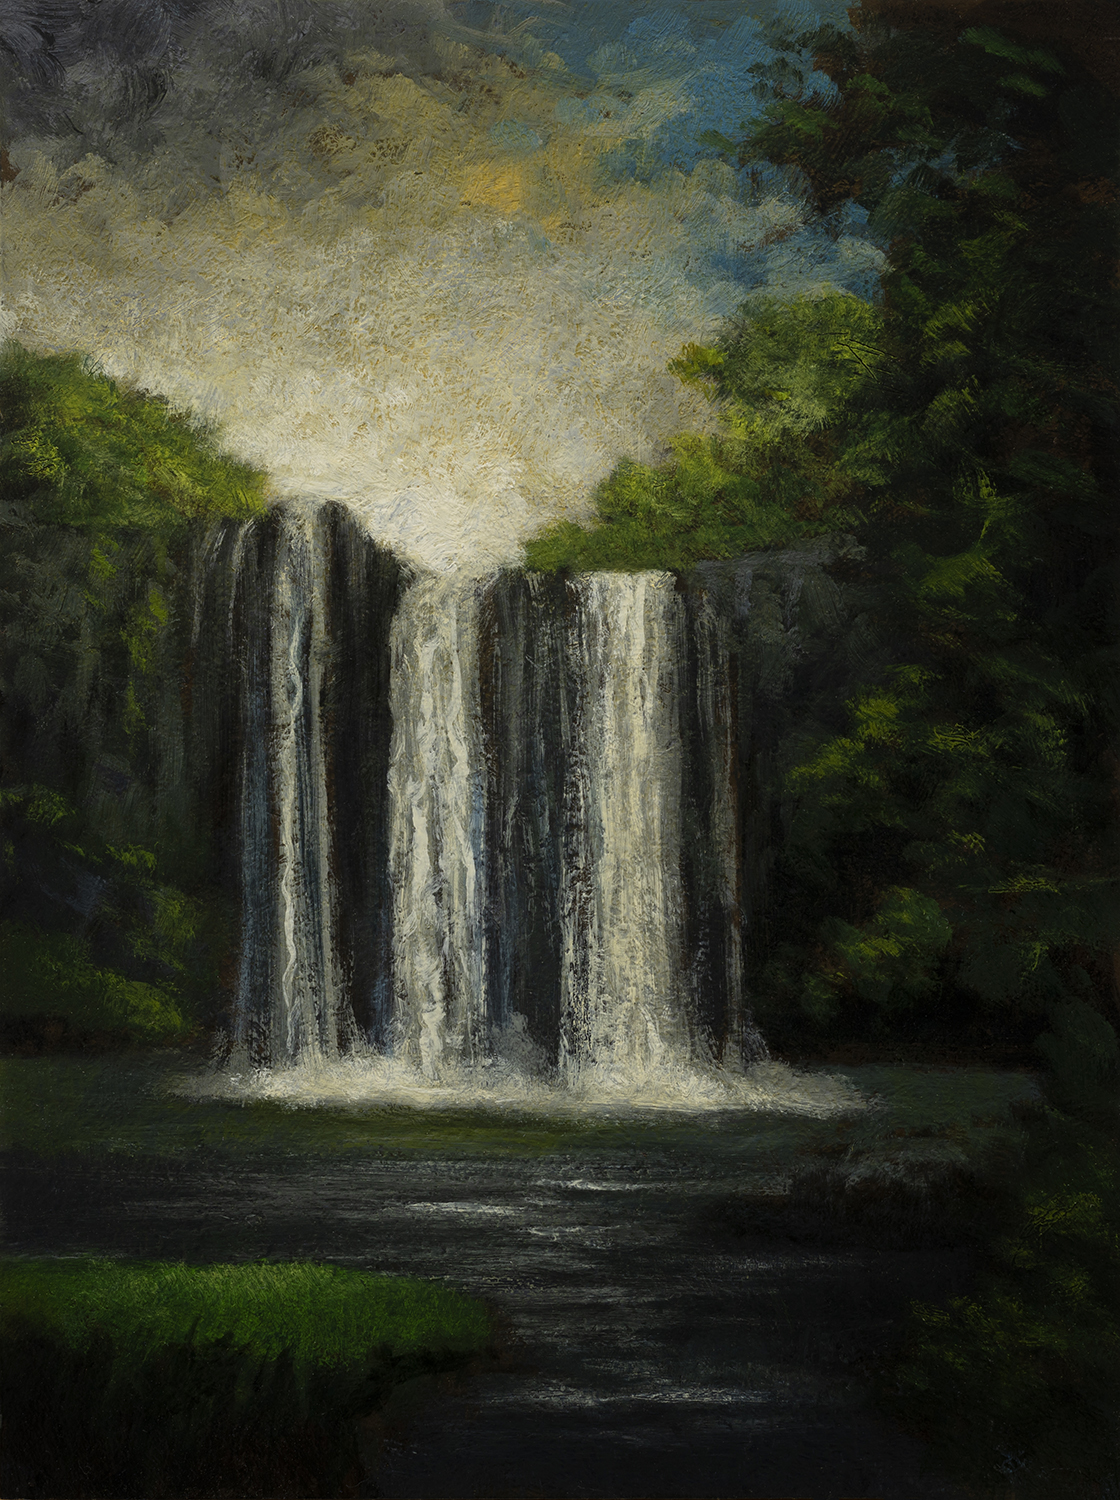 Near the Falls by M Francis McCarthy - 6x8 Oil on Wood Panel